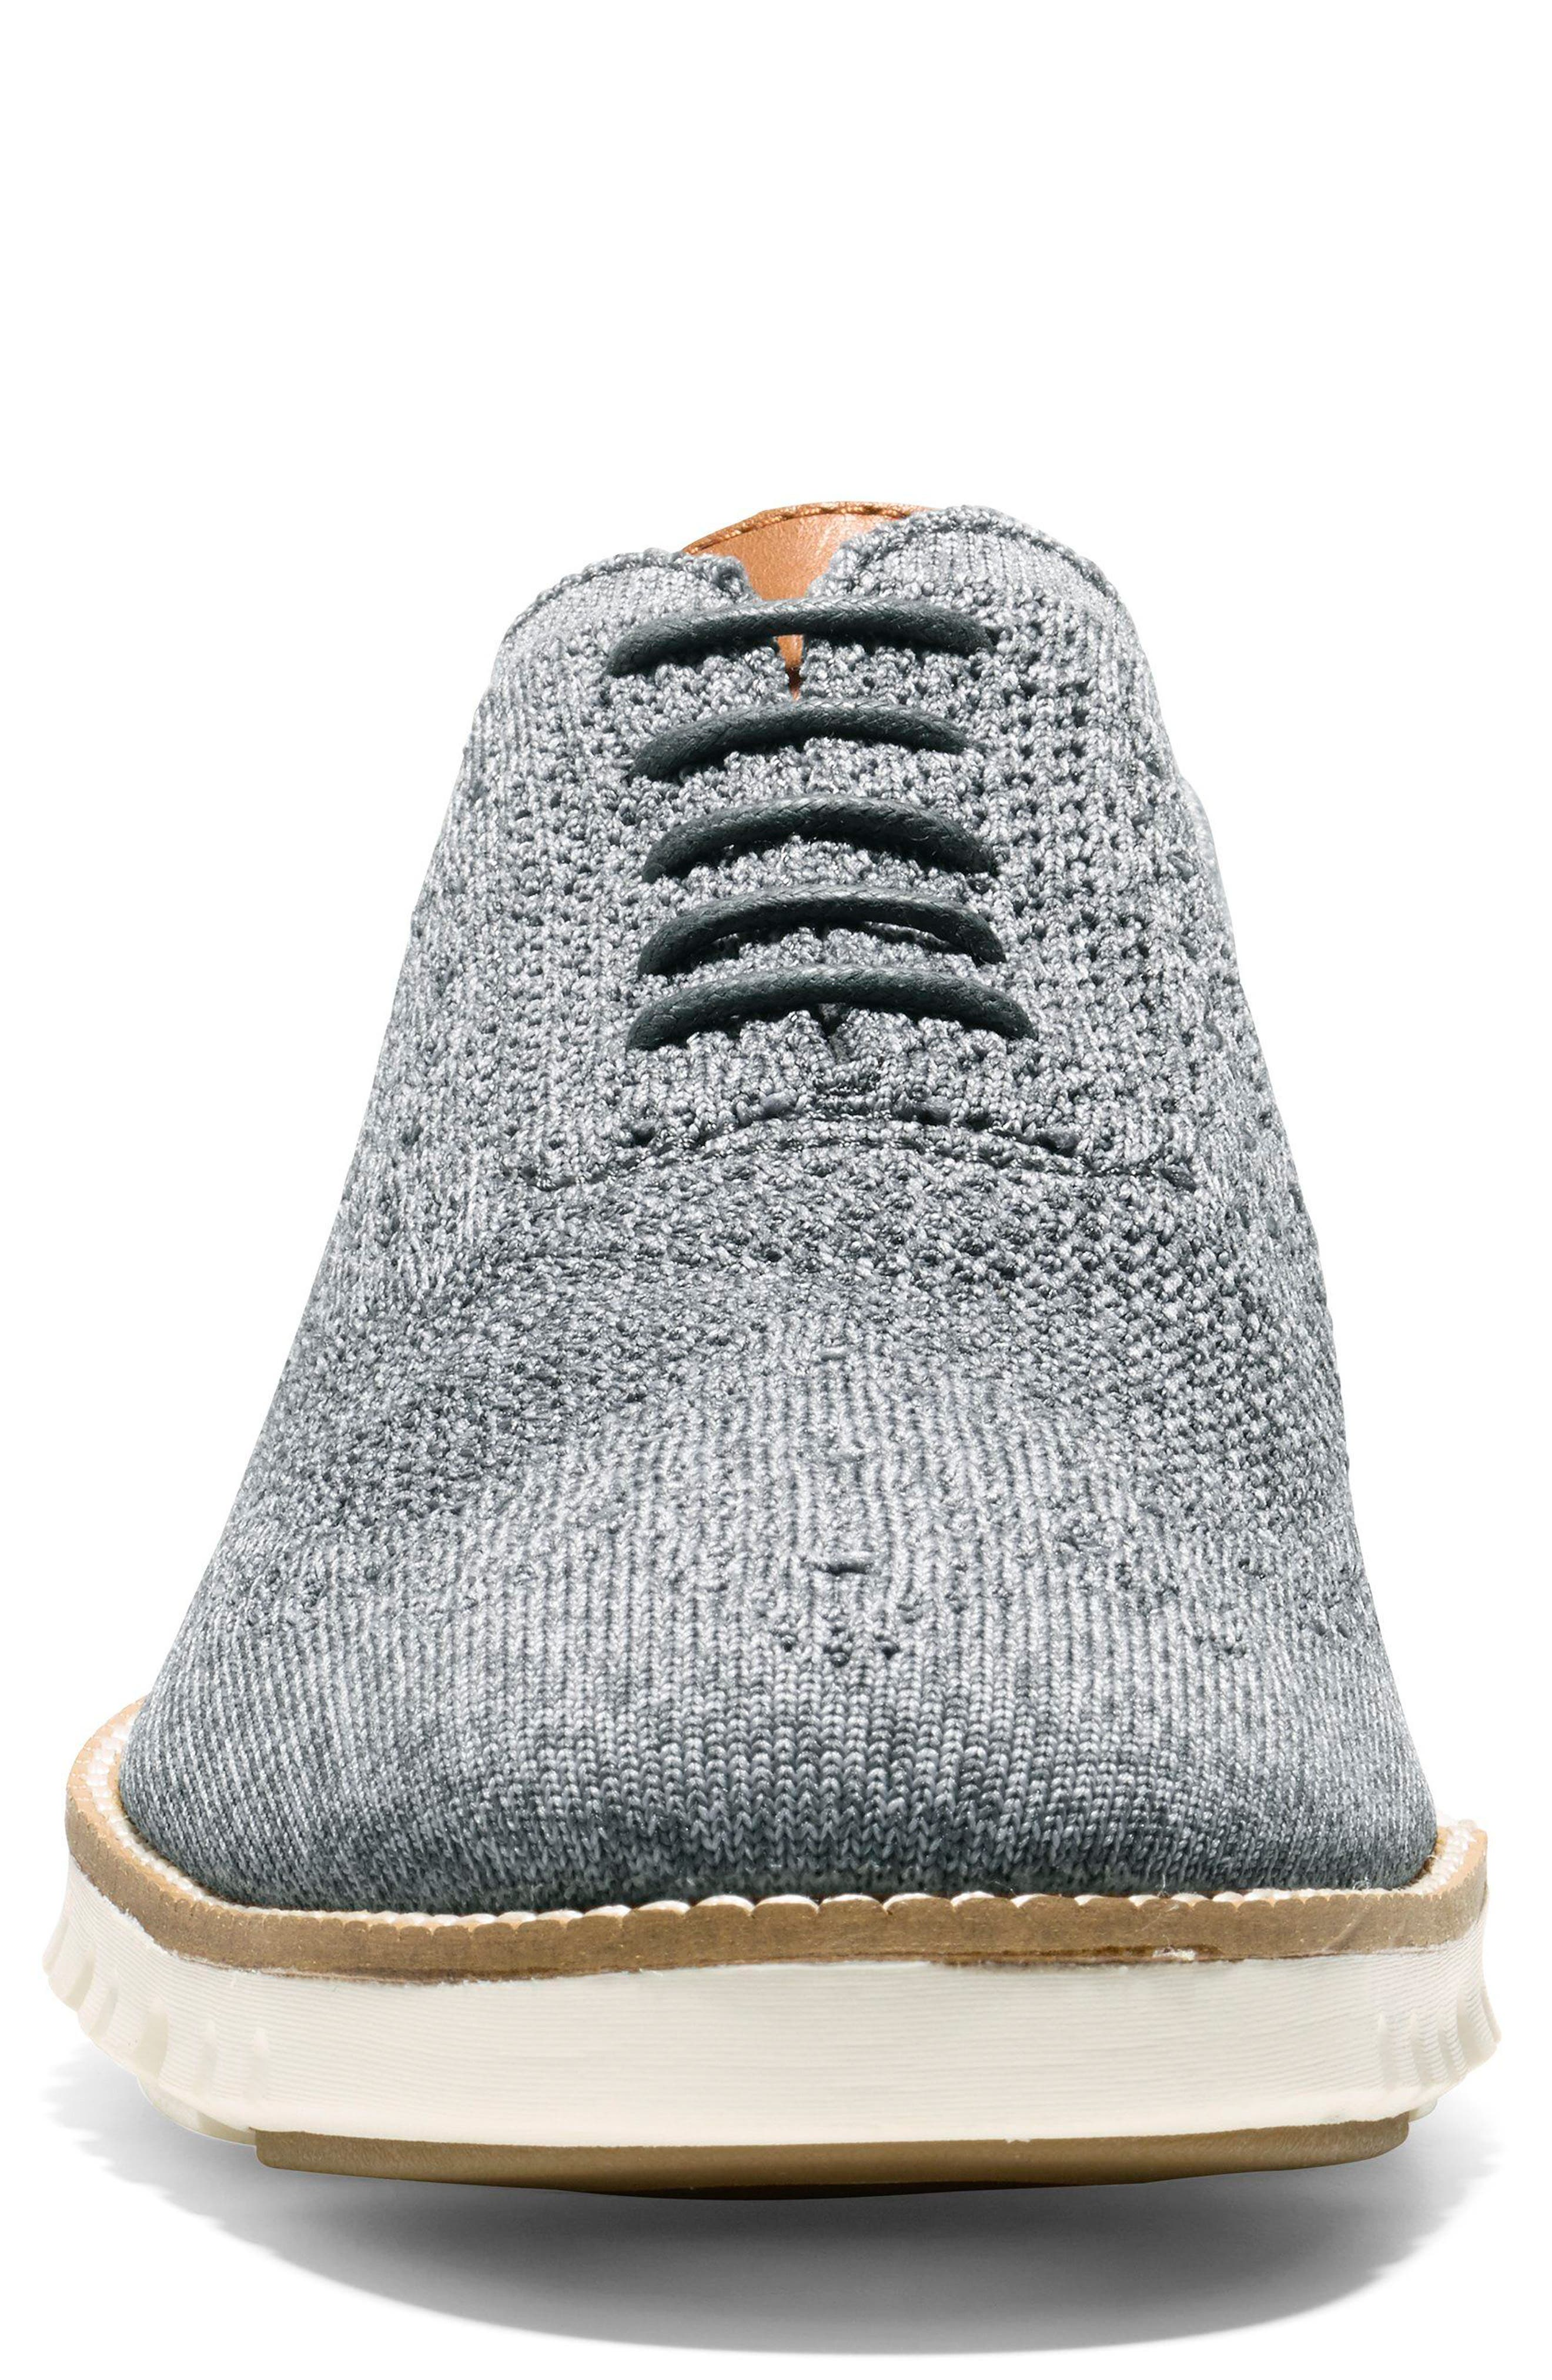 ZeroGrand Stitchlite Woven Wool Wingtip,                             Alternate thumbnail 4, color,                             IRONSTONE/ MAGNET/ IVORY